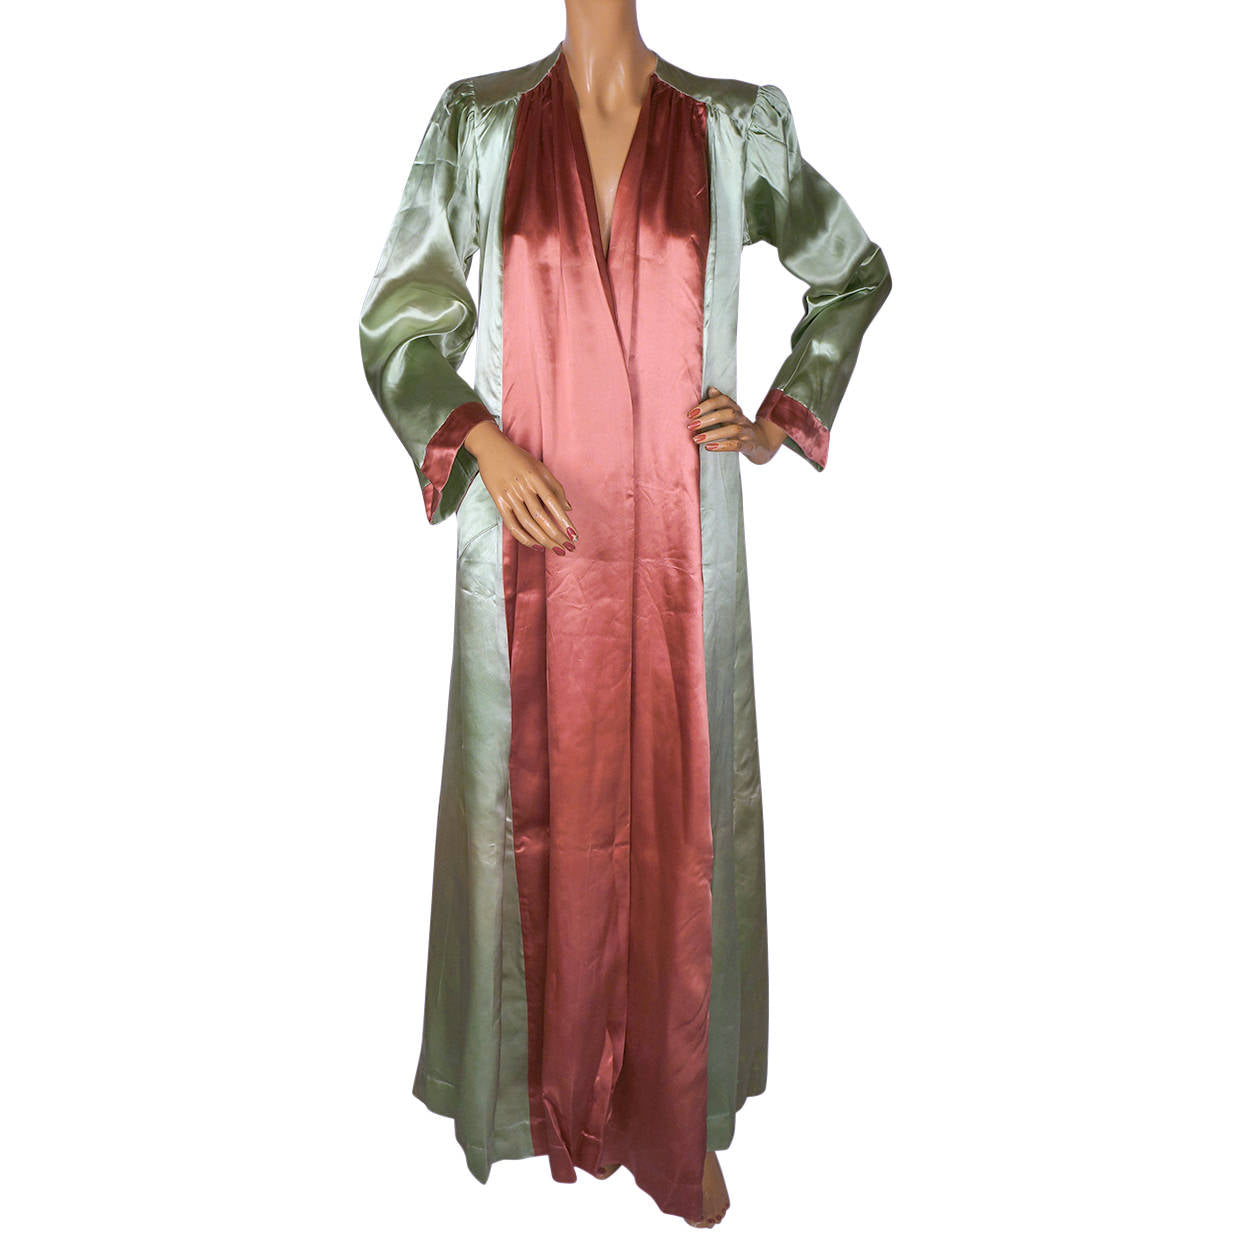 Satin Dressing Gown: Vintage 1930s Satin Dressing Gown Green Pink Lounging Robe